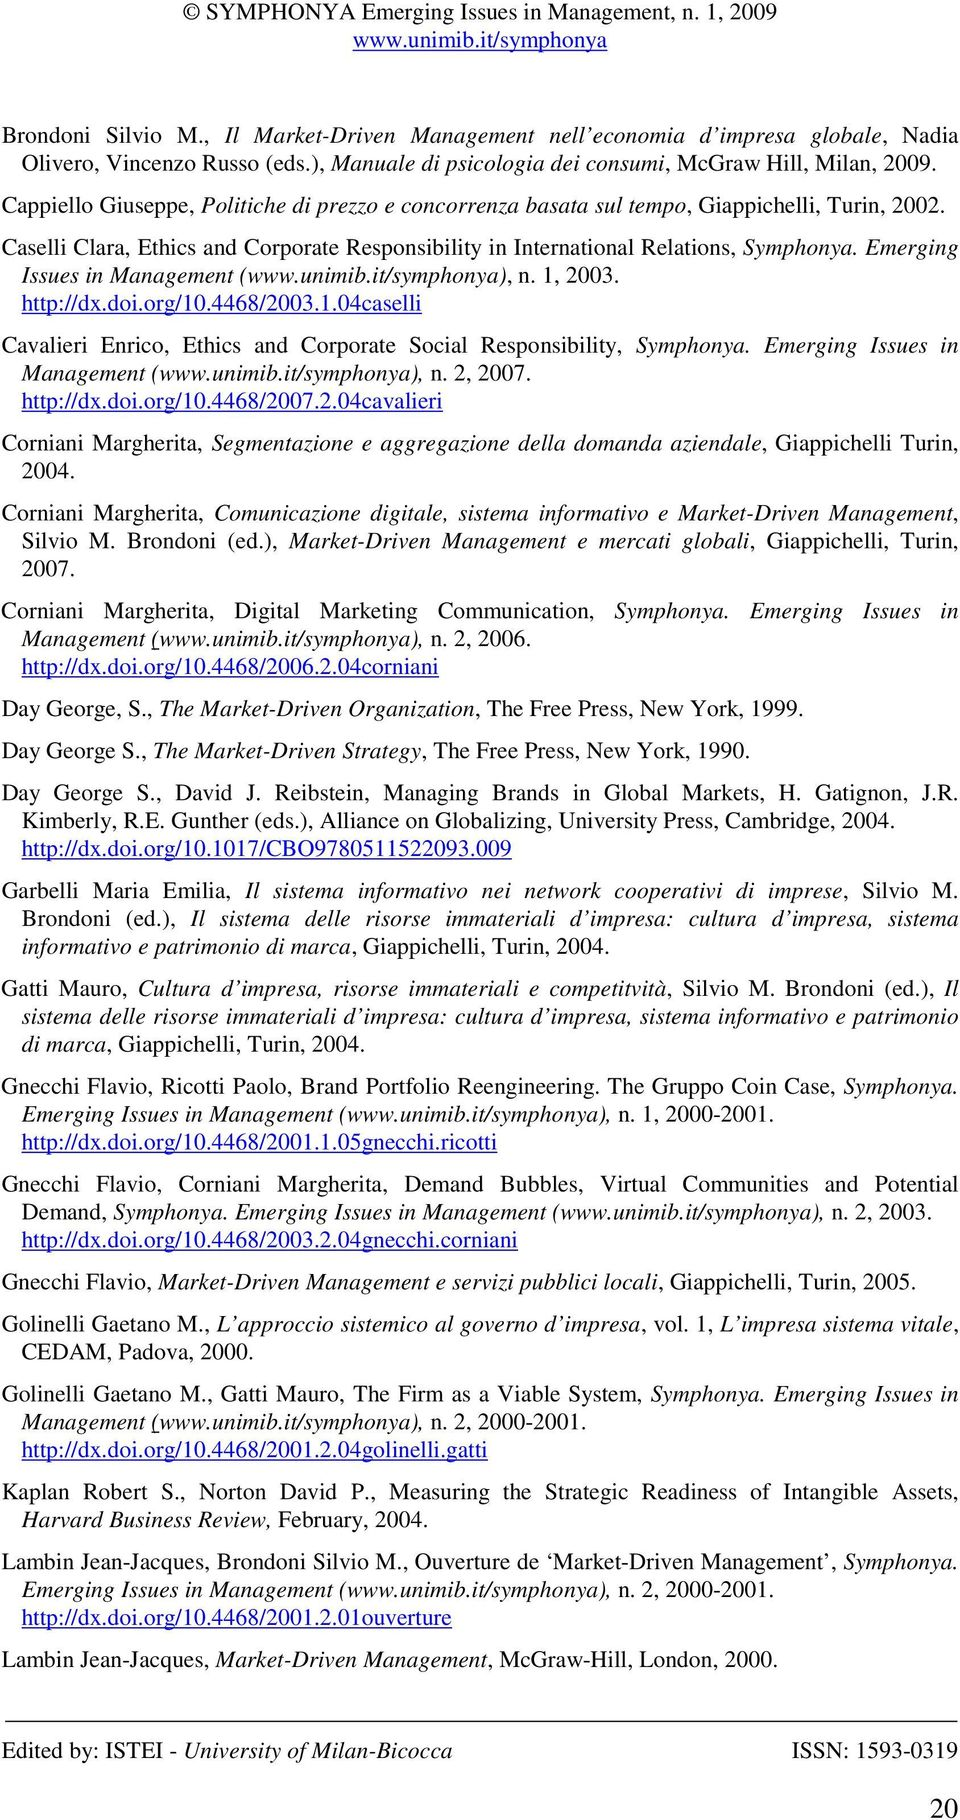 Emerging Issues in Management (), n. 1, 2003. http://dx.doi.org/10.4468/2003.1.04caselli Cavalieri Enrico, Ethics and Corporate Social Responsibility, Symphonya. Emerging Issues in Management (), n.